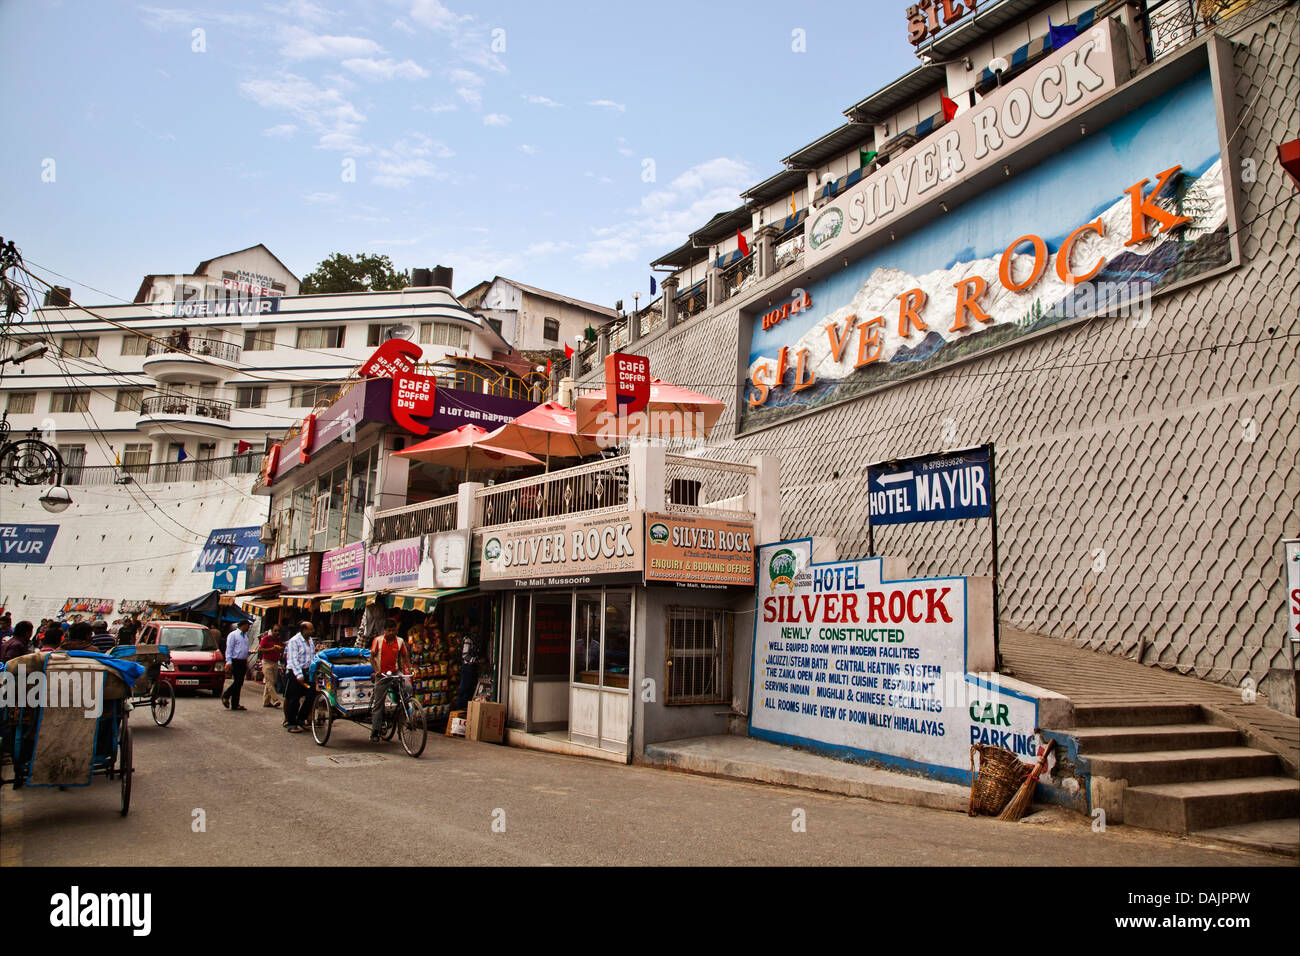 Buildings at the roadside, Mall Road, Mussoorie, Uttarakhand, India - Stock Image